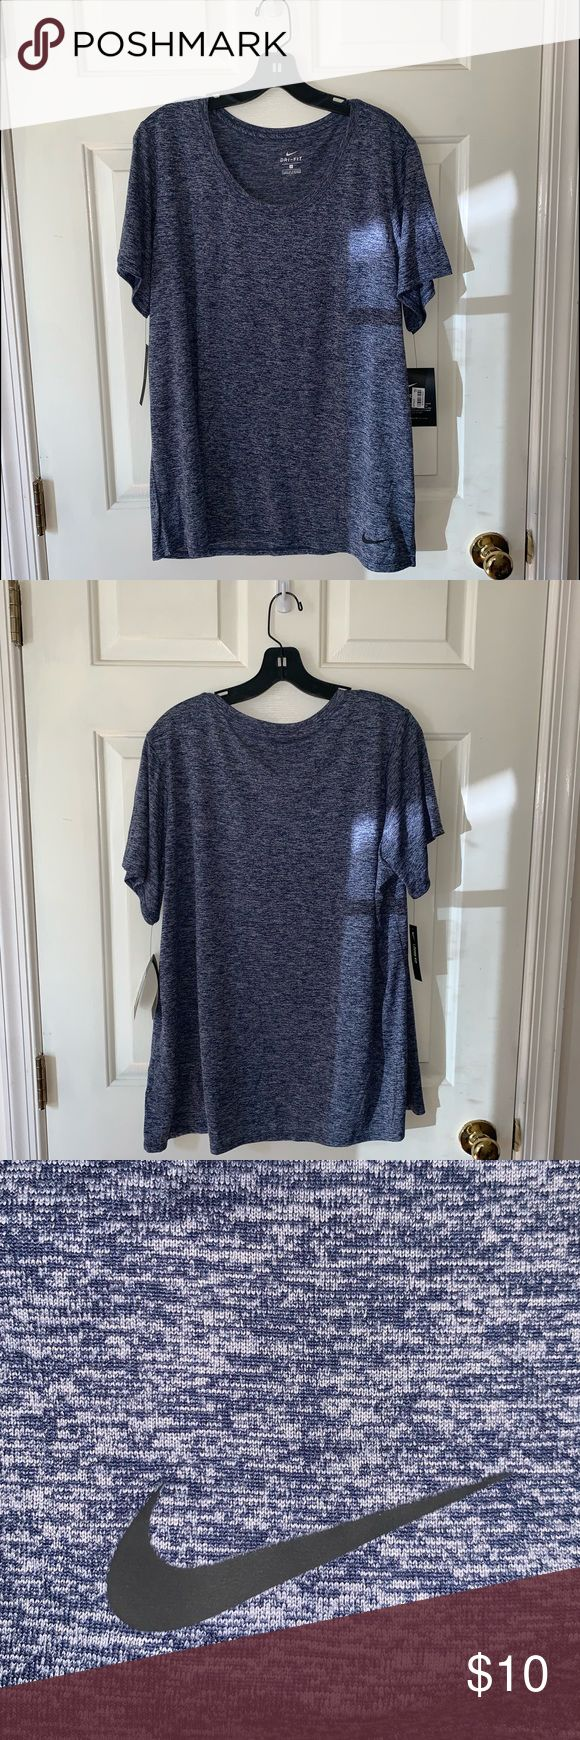 Nike Dri Fit Blue T Shirt Never Been Worn Loose Fit 100 Polyester Have 5 T Shirts Of Size 1x Included A Size Chart F Clothes Design Fashion Fashion Design